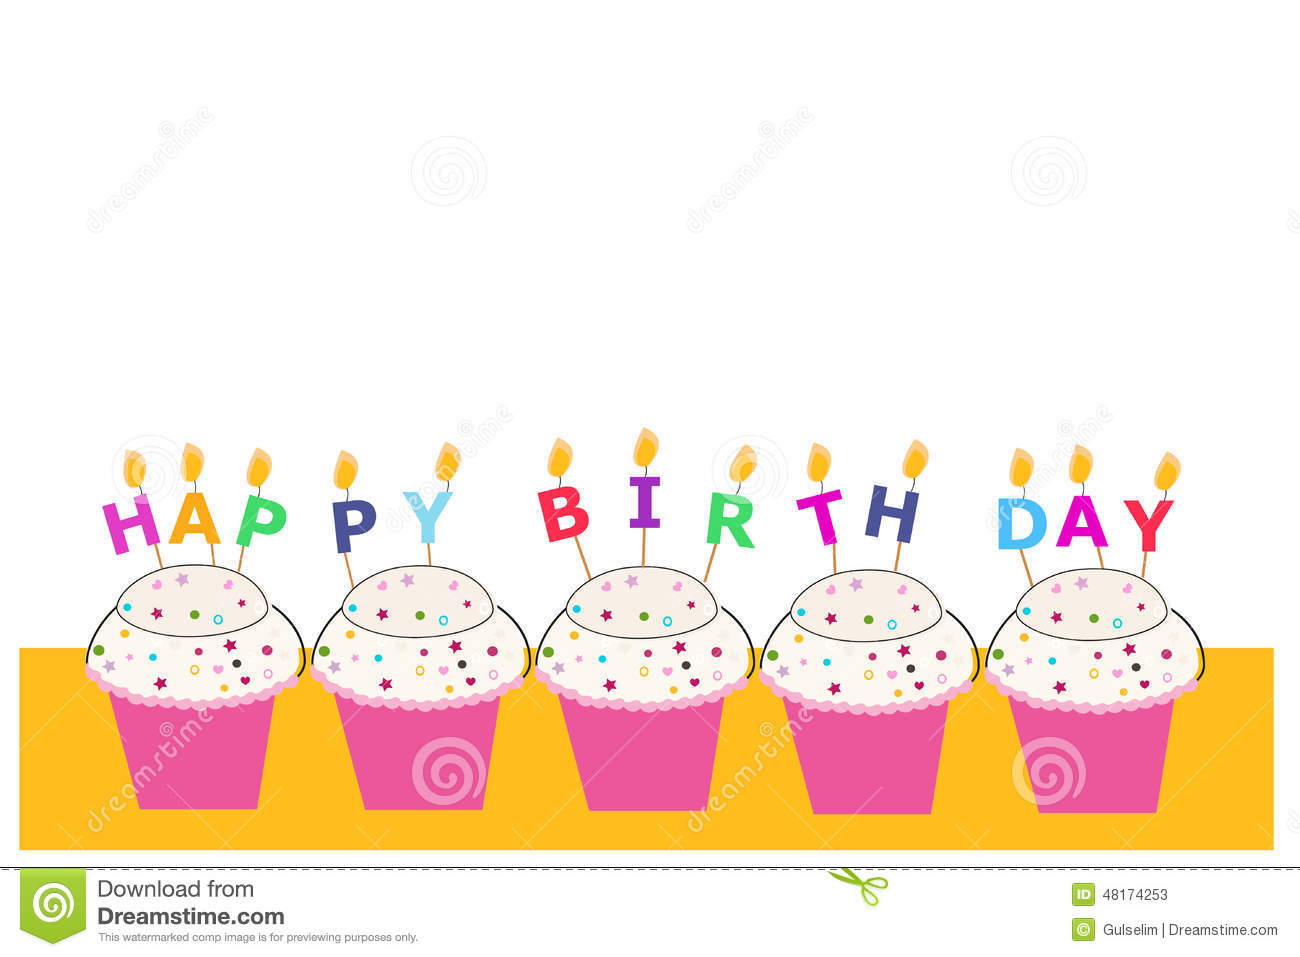 Happy Birthday Greeting Card With Cupcakes And Candles Stock Vector